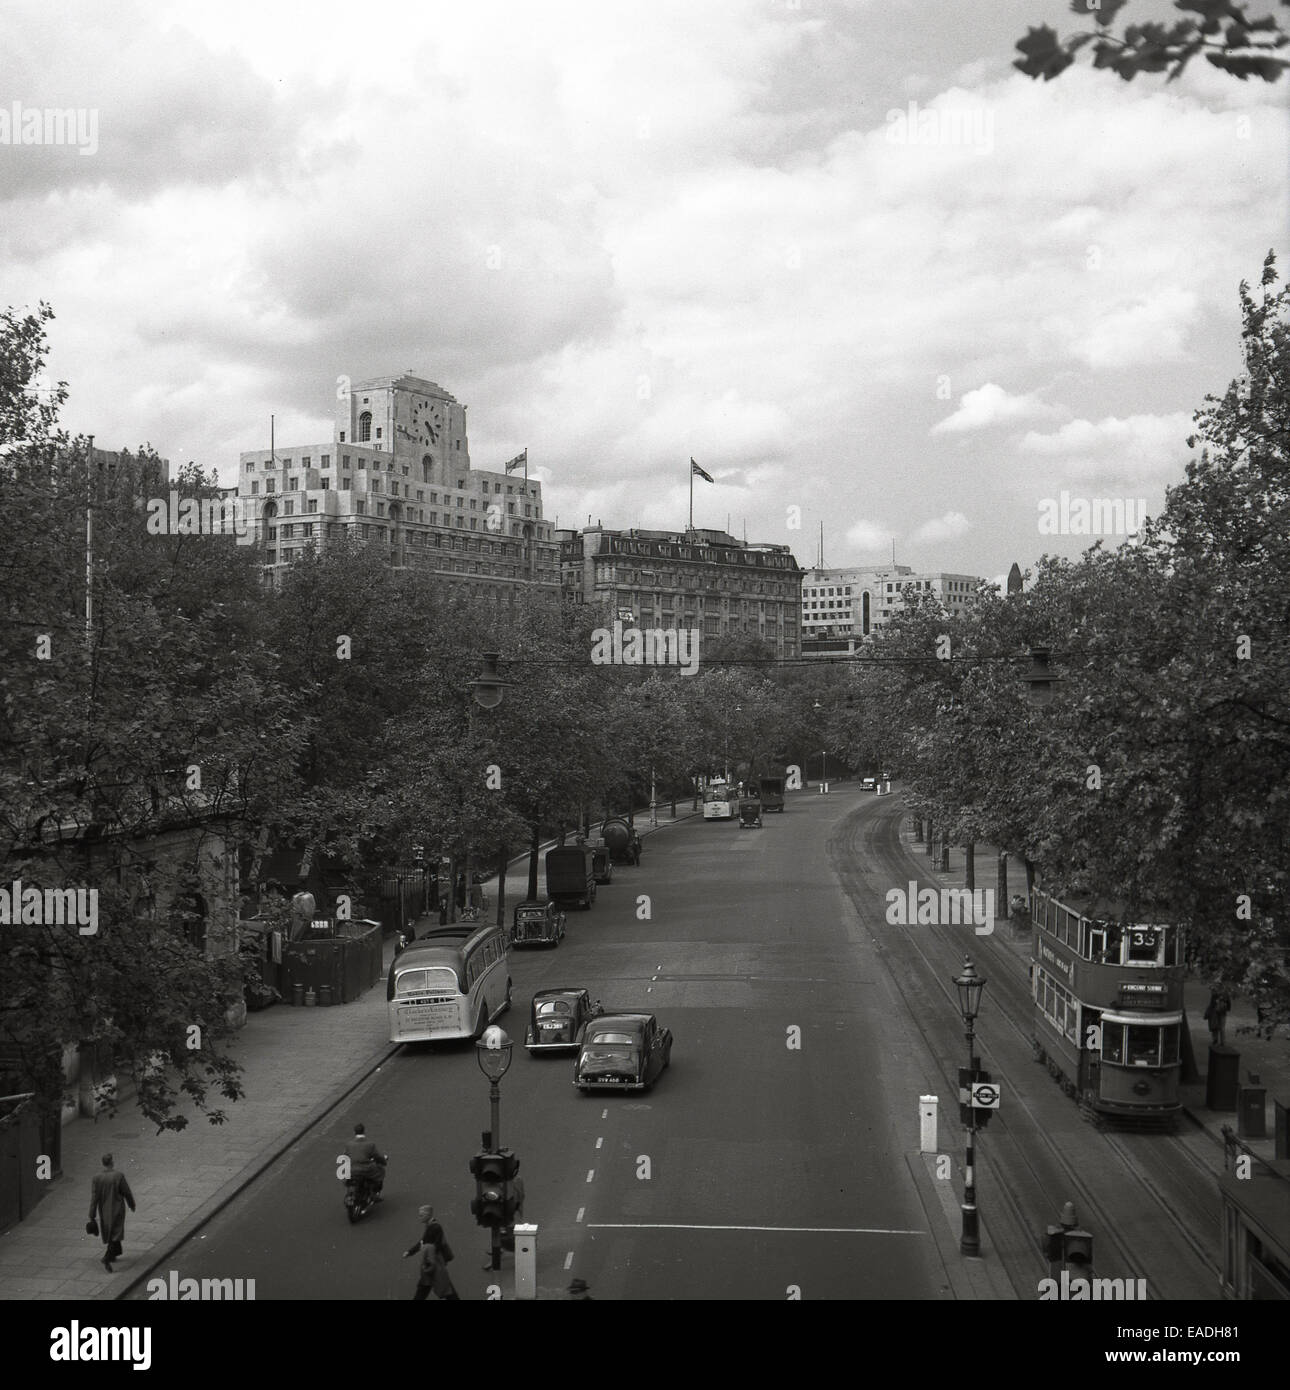 1940 historical picture of the Victoria embankment by River Thames, London with the Savoy Hotel in the background - Stock Image